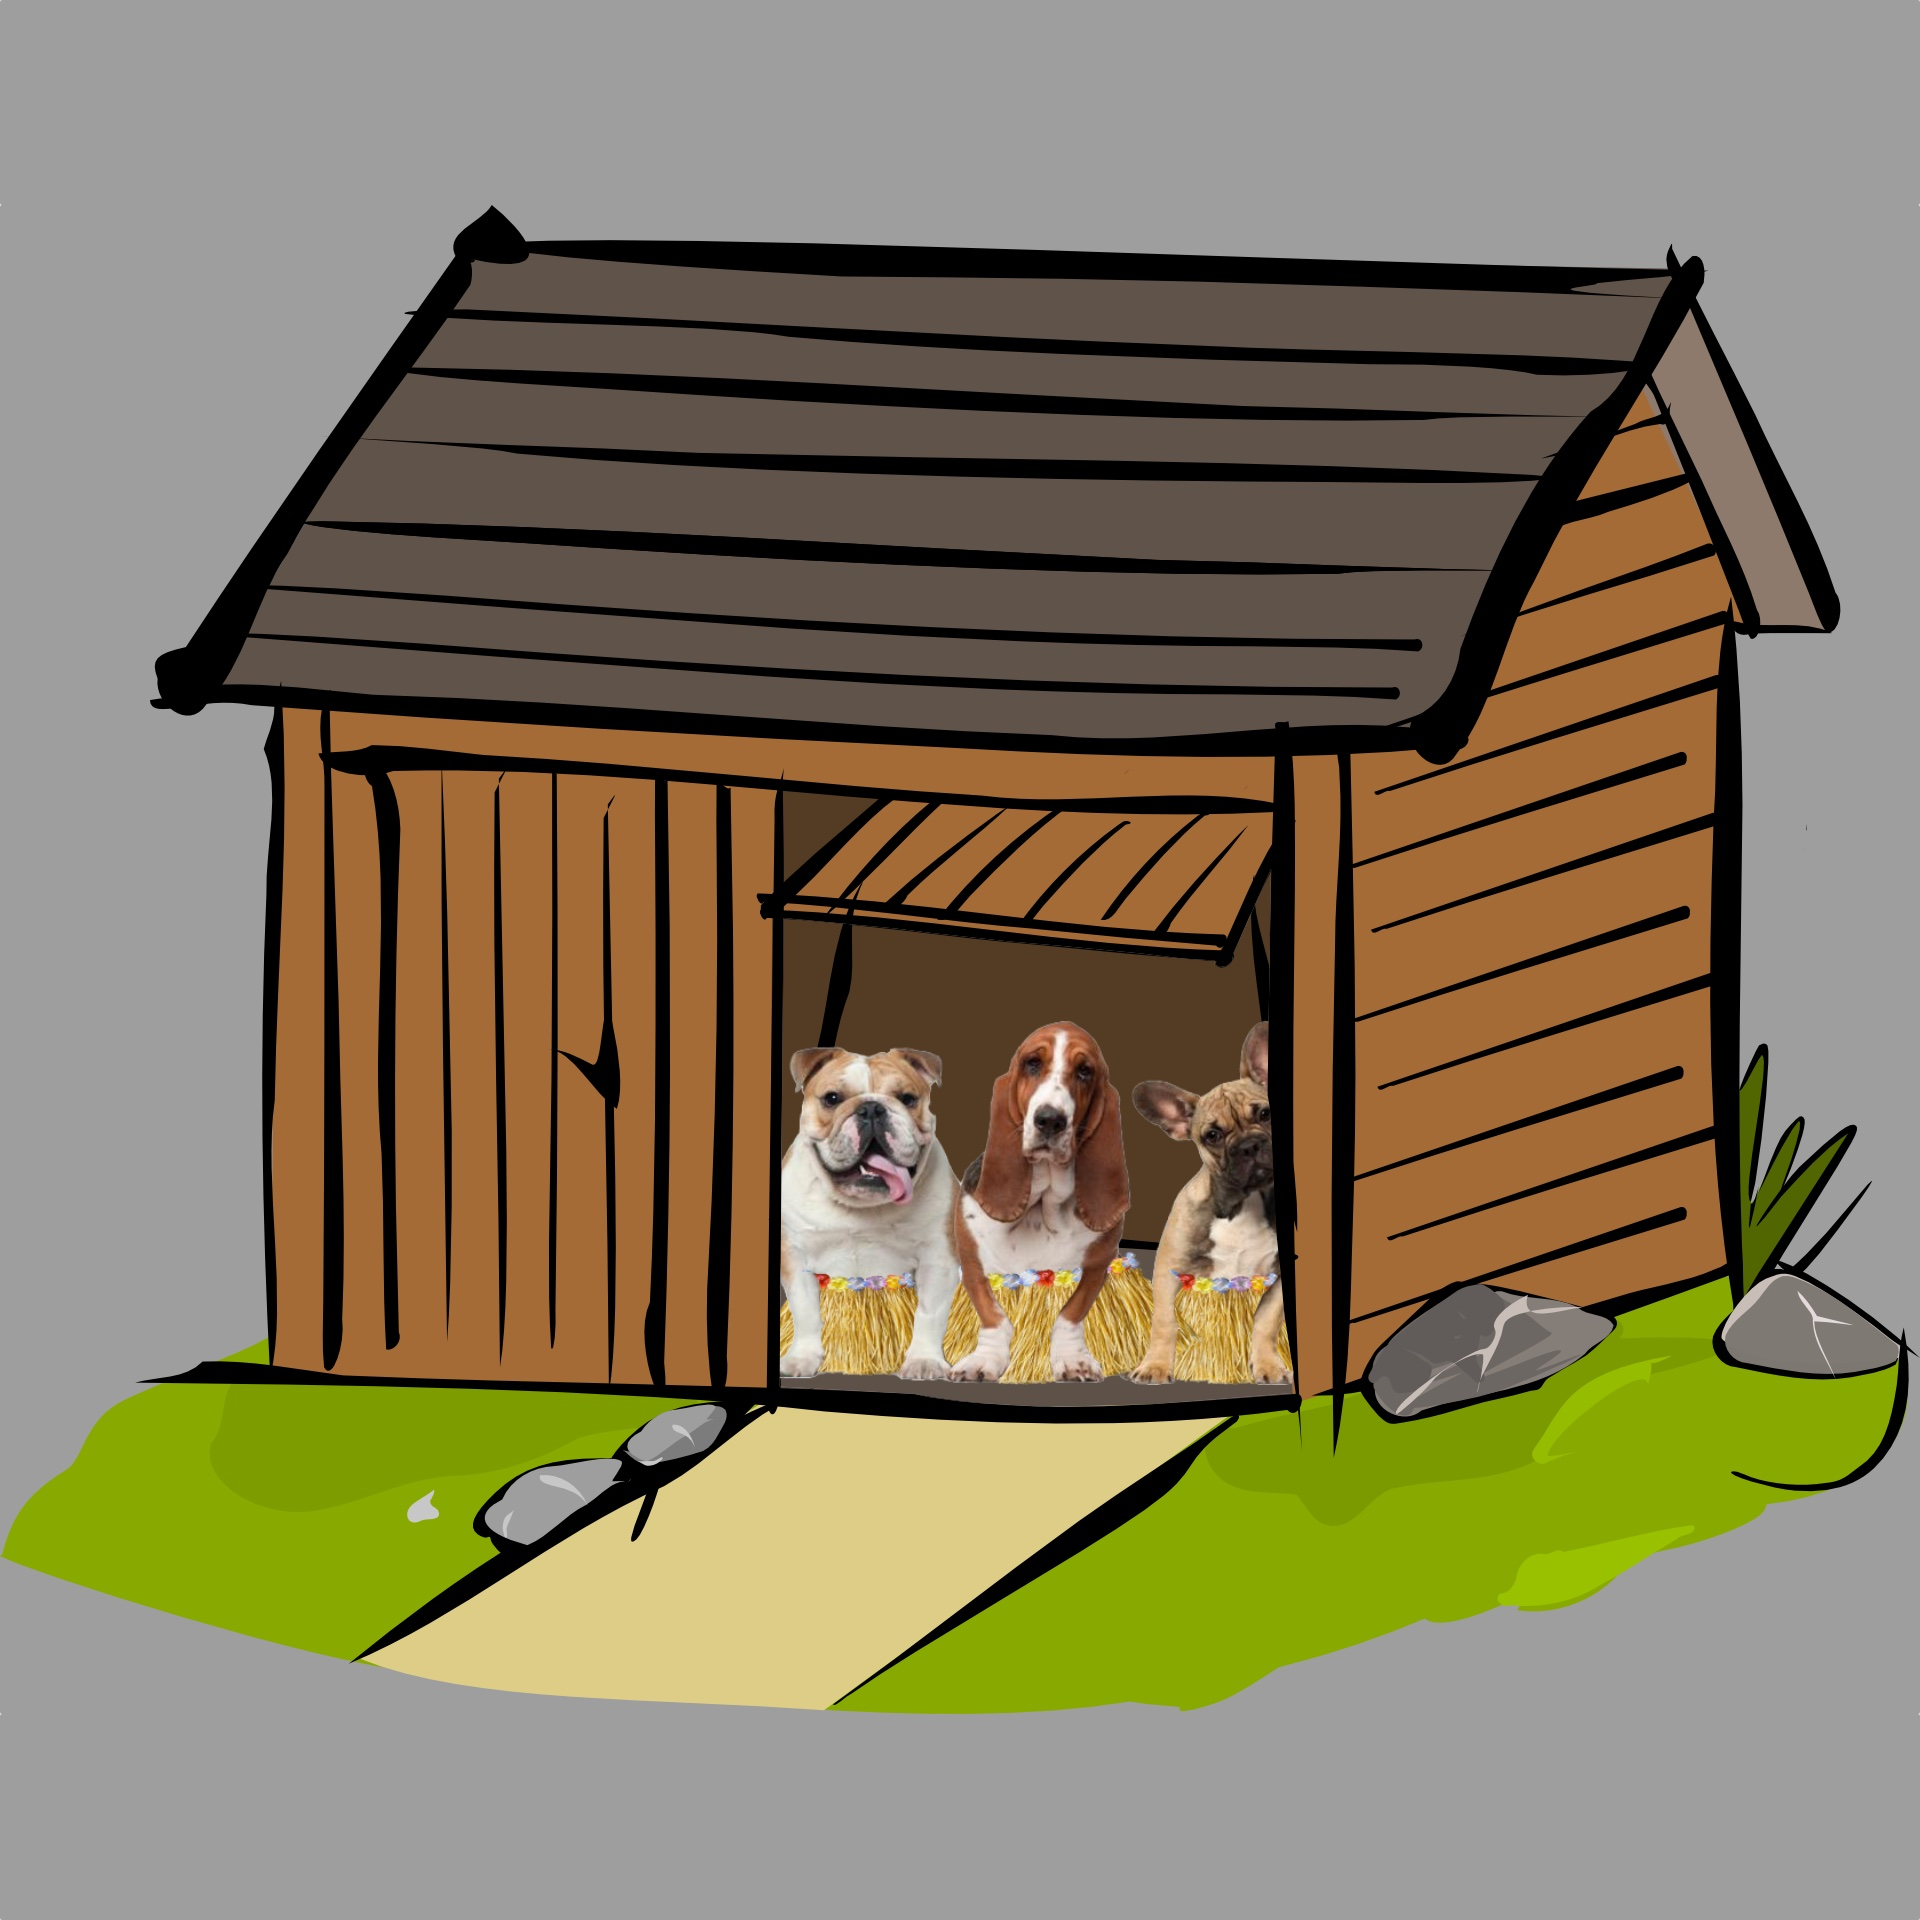 Hula Dogs in Shed.jpg